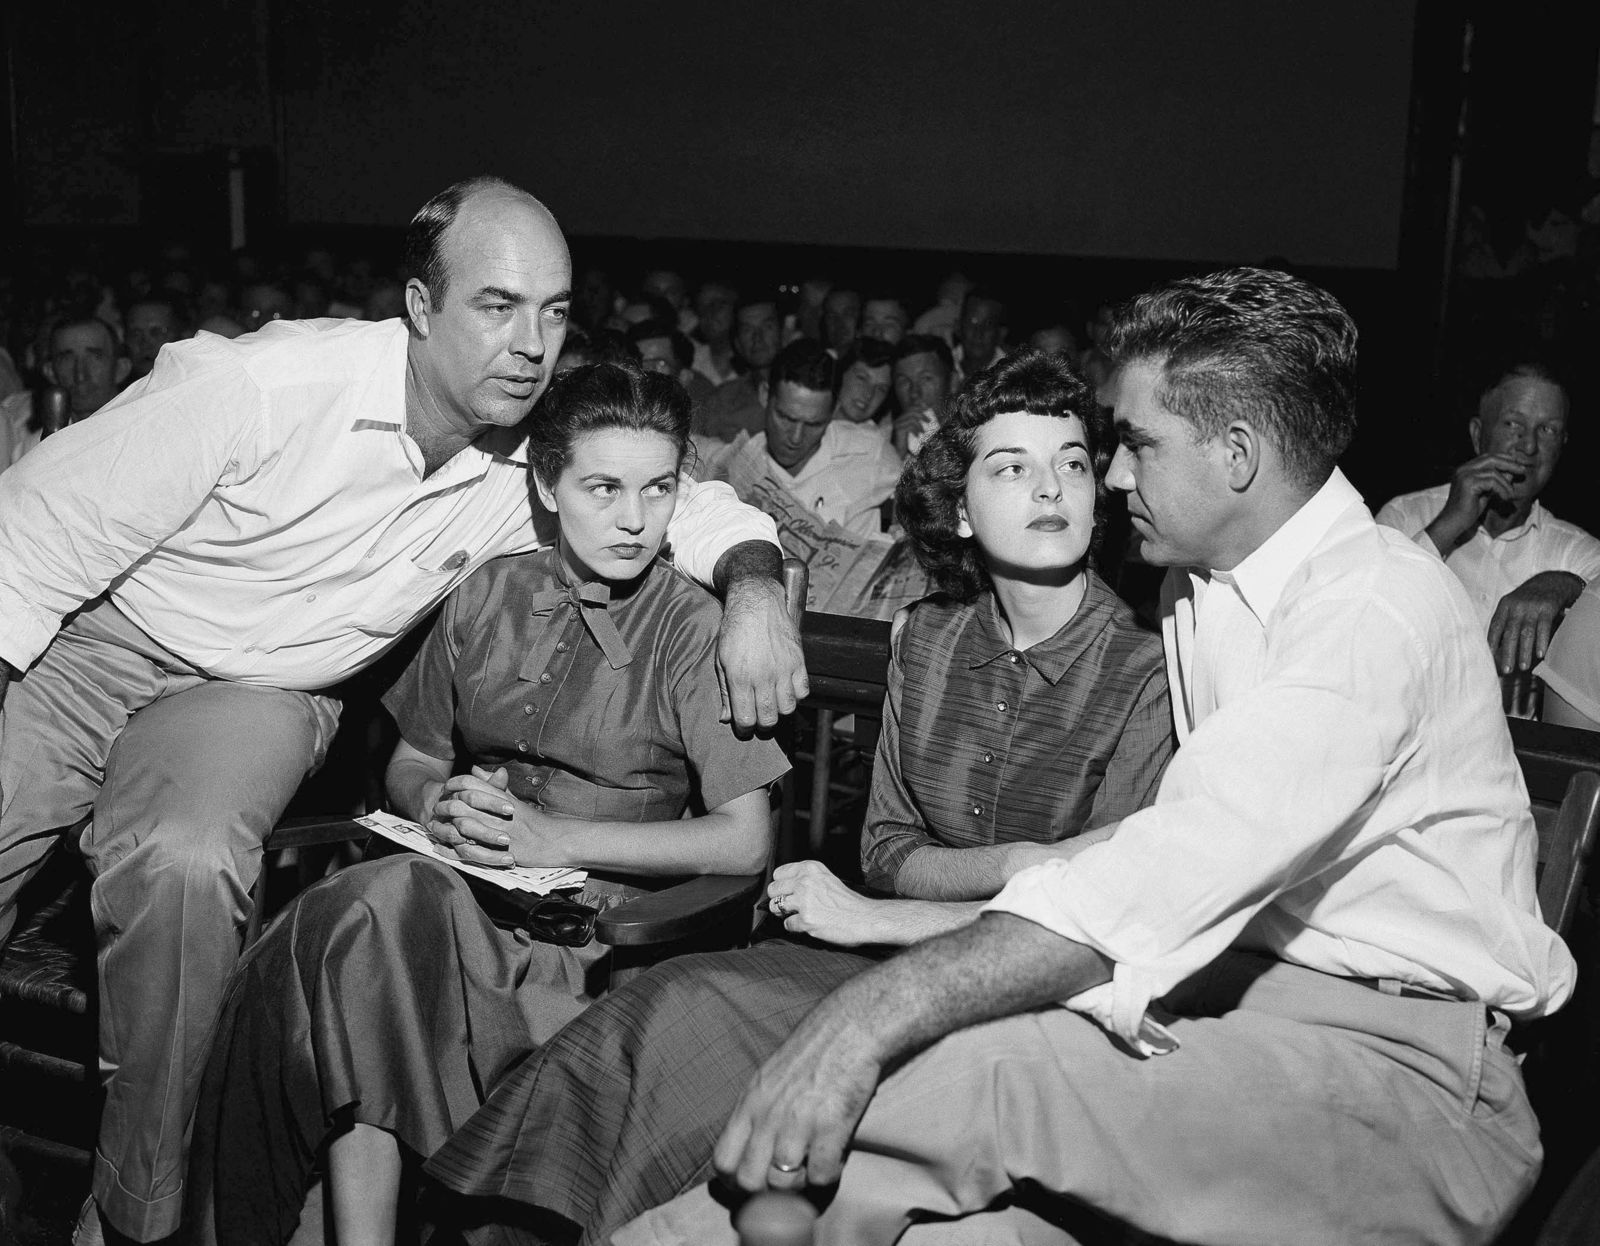 FILE - In this Sept. 23, 1955, file photo, J.W. Milam, left, his wife, second from left, Roy Bryant, far right, and his wife, Carolyn Bryant, sit together in a courtroom in Sumner, Miss. Bryant and his half-brother Milam were charged with murder but acquitted in the kidnapping and torture slaying of 14-year-old black teen Emmett Till in 1955 after he allegedly whistled at Carolyn Bryant. The government is still investigating the brutal slaying of the black teenager that helped spur the civil rights movement more than 60 years ago. A Justice Department report issued to Congress about civil rights cold case investigations lists the killing of Till as being among the unit's active cases. (AP Photo, File)